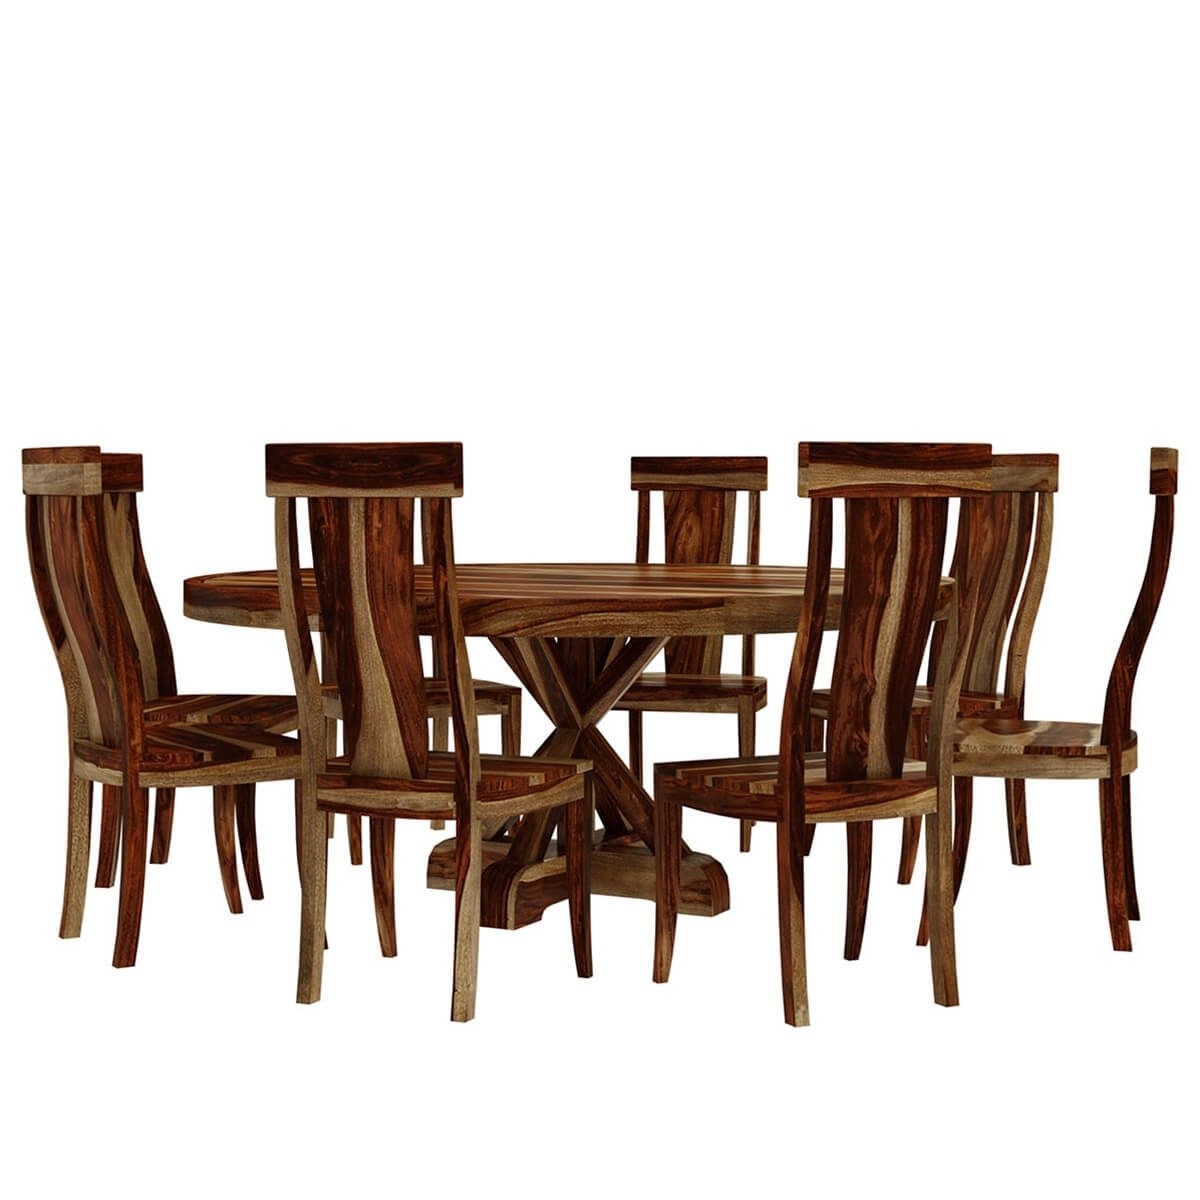 Bedford X Pedestal Rustic 72 Round Dining Table With 8 Chairs Set